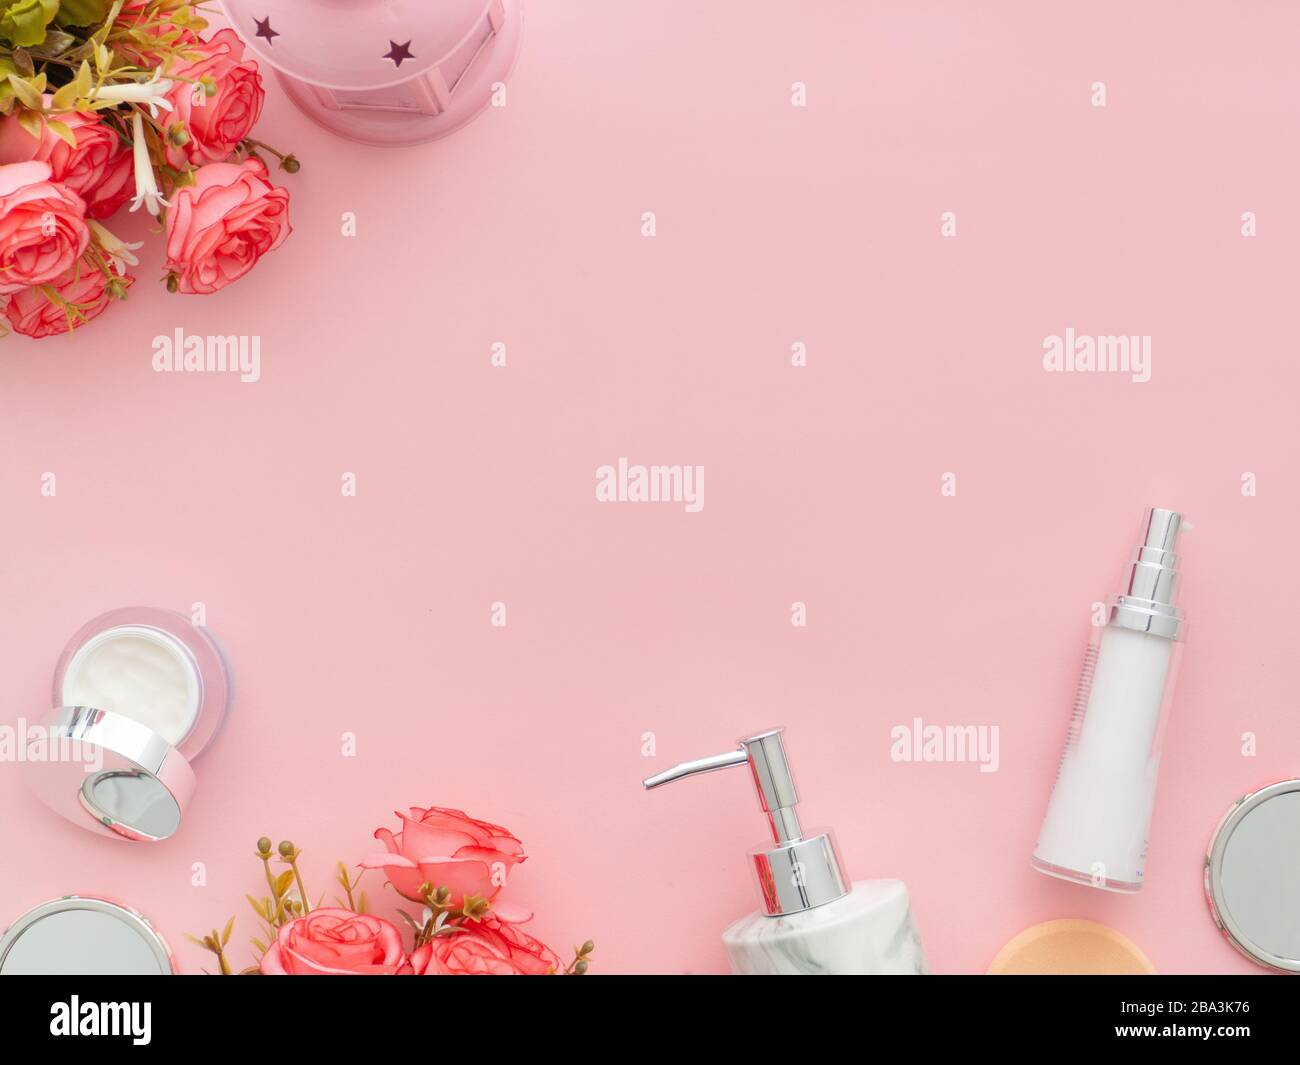 Beauty Background With Body Cosmetics Products Roses Flowers On Pastel Light Pink Desktop Background With Copy Space Modern Spring Skin Care Layout Stock Photo Alamy